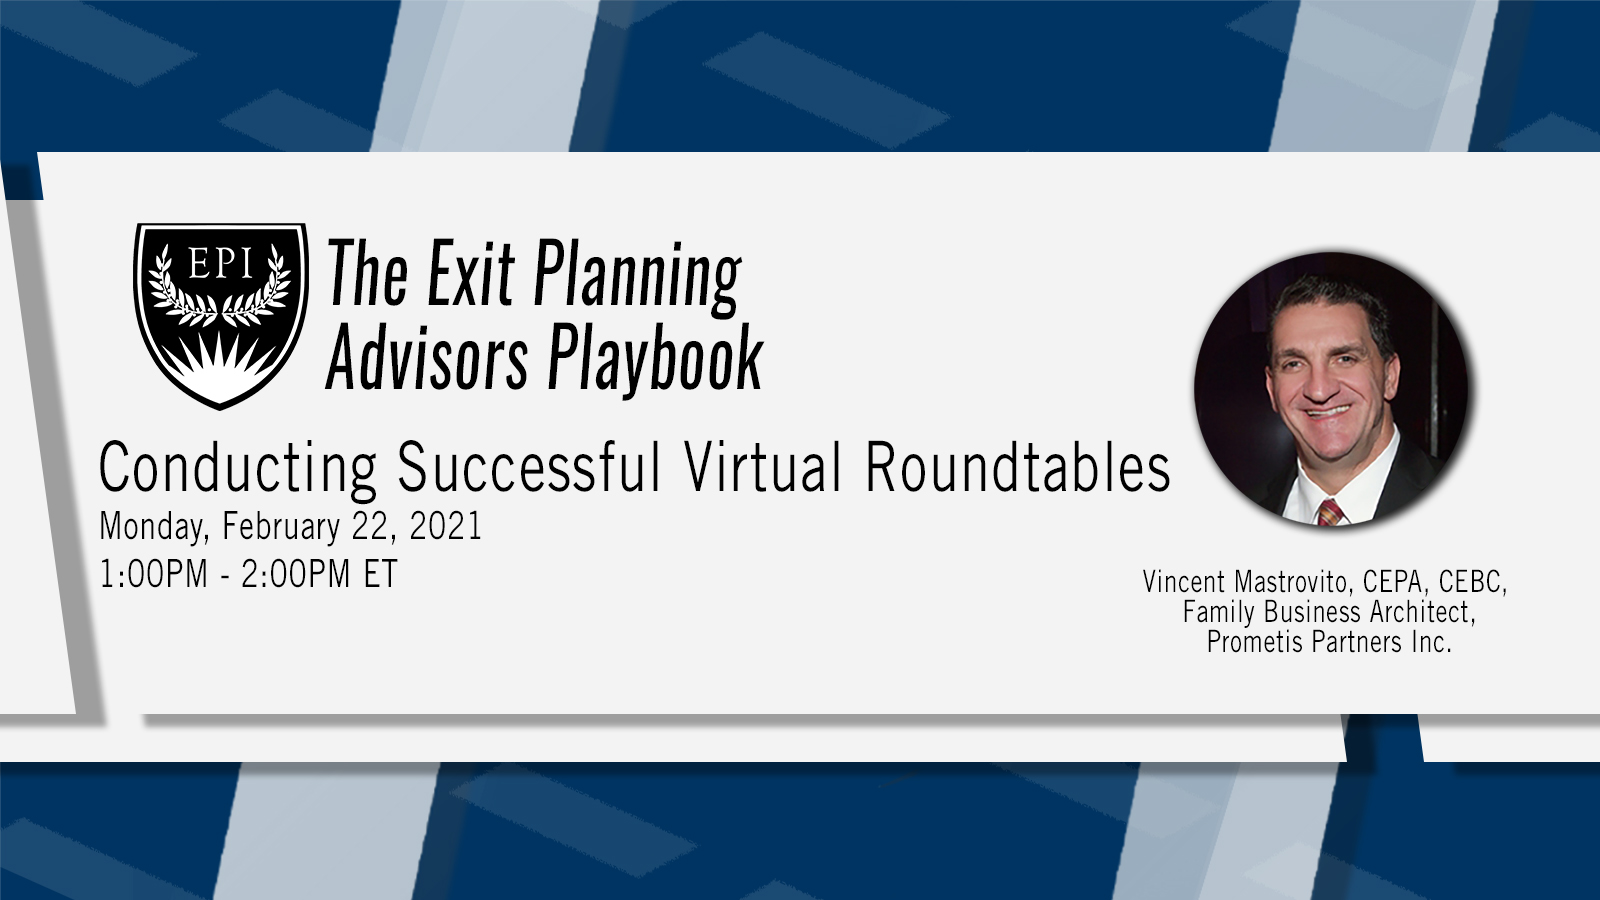 Conducting Successful Virtual Roundtables